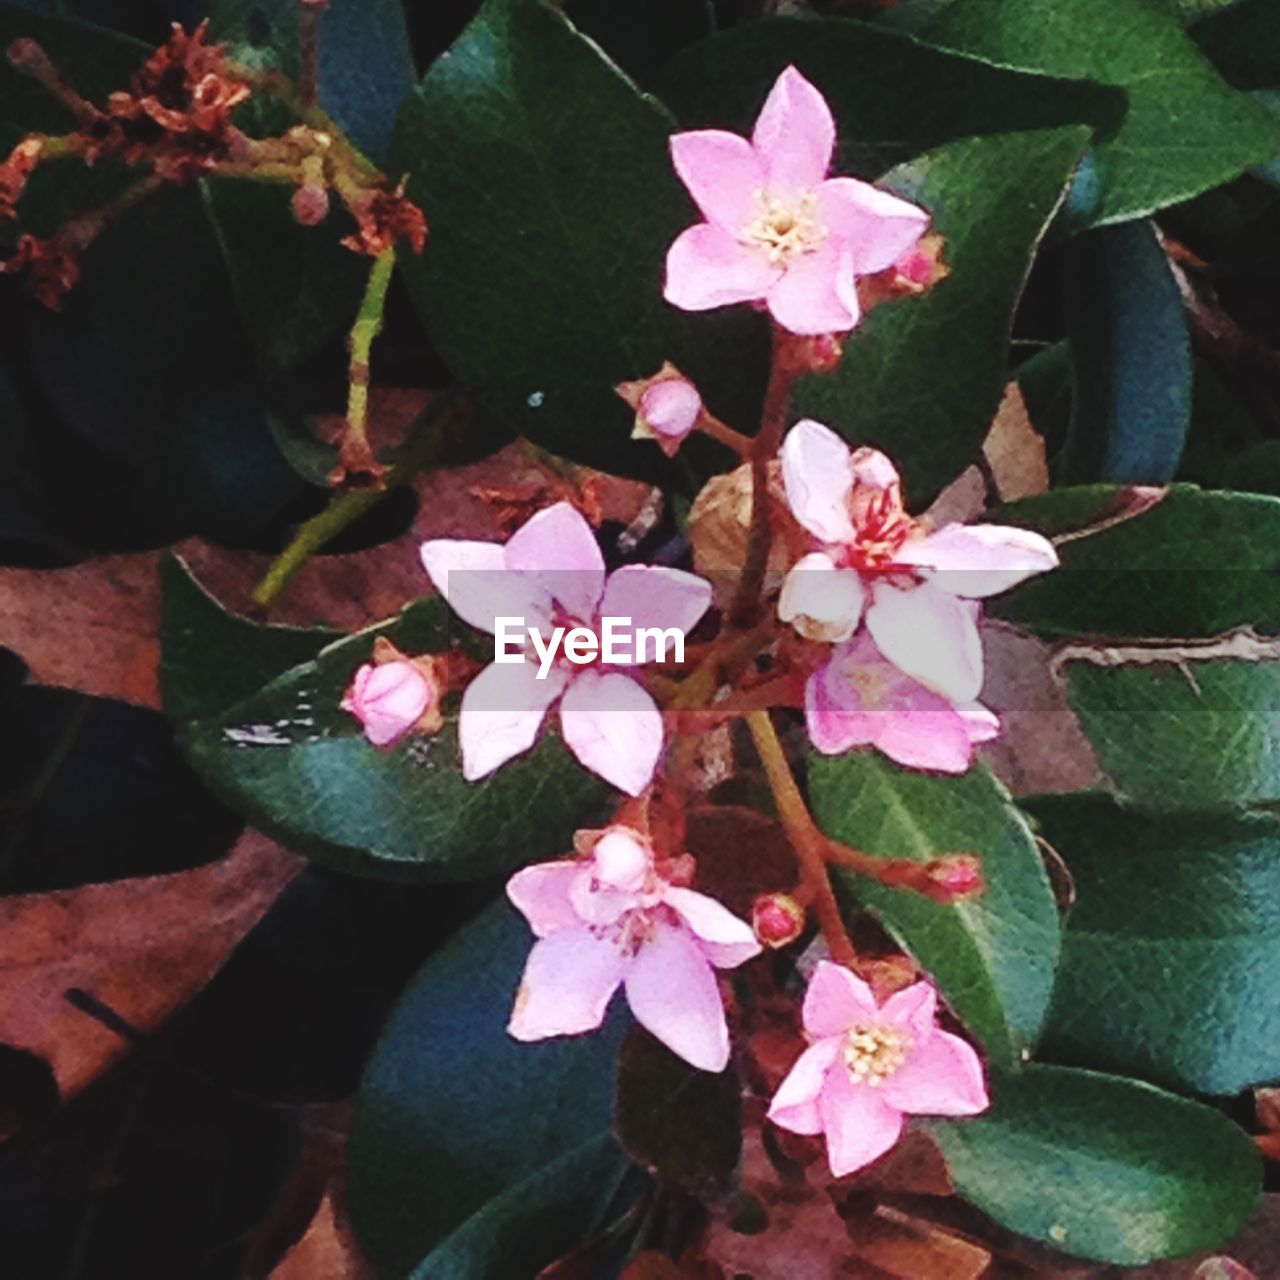 flower, fragility, growth, beauty in nature, petal, nature, flower head, freshness, high angle view, pink color, plant, day, outdoors, leaf, no people, periwinkle, springtime, close-up, blooming